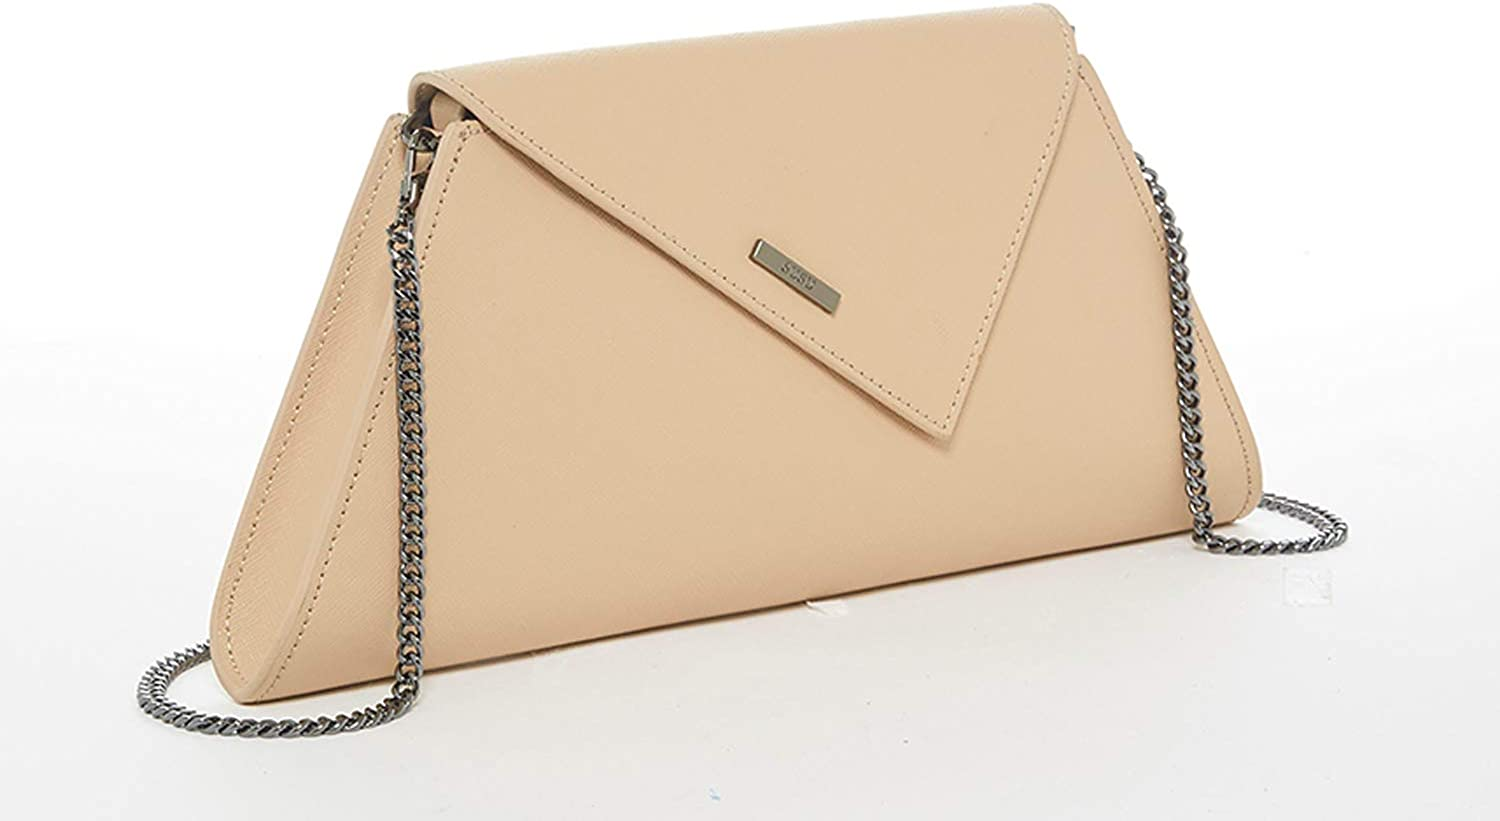 NEW FAUX LEATHER  EVENING DAY CLUTCH BAG WEDDING PARTY NUDE FUCHSIA PINK TAN